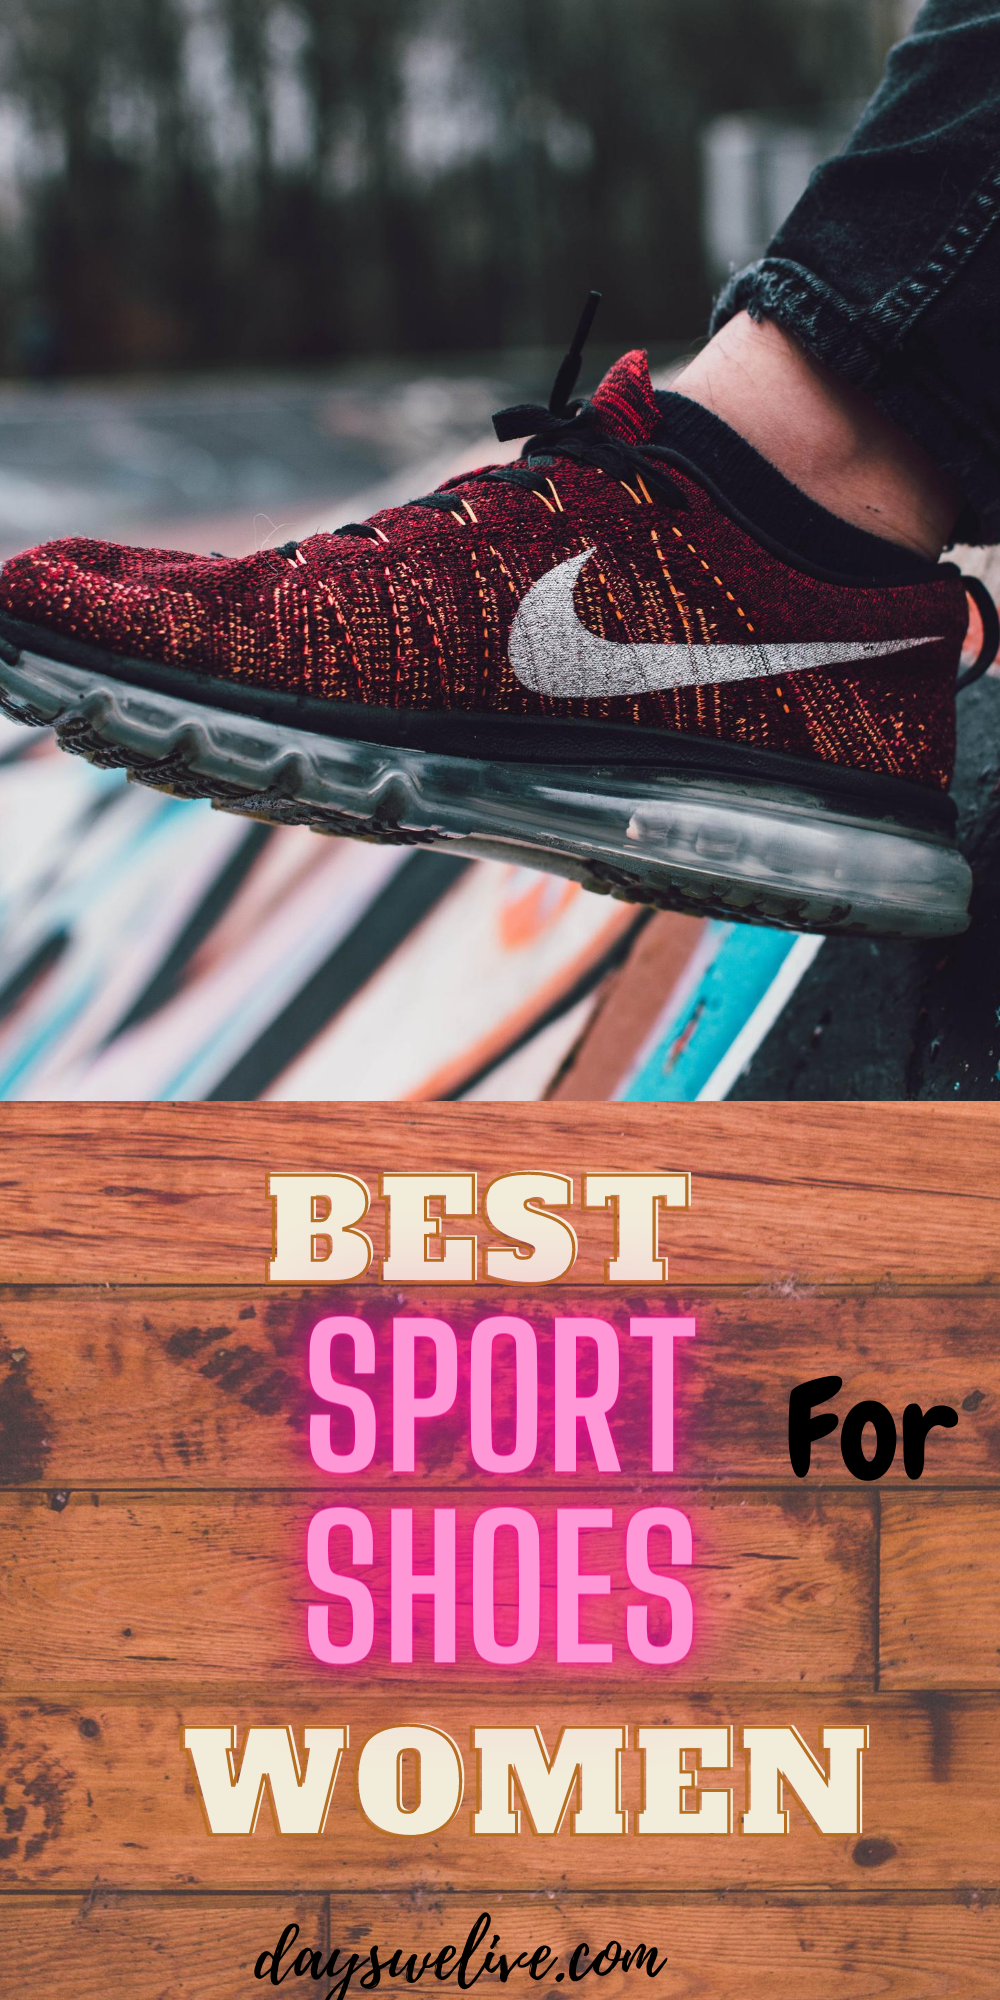 Here are the best Running shoes for women. When you want to begin working out or trying to be a regular runner or jogger than you want everything to be perfect- your diet, your track, and most importantly your running shoes. If you are already a pro runner or athlete then there is no way you would accept an ordinary pair of running shoes. #bestshoes #bestrunningshoes #shoes #shoesforwomen #womenshoe #runningshoesforwomen #sportsshoes #sports #bestoutfit #sportshoesforwomen #run #running #outfit